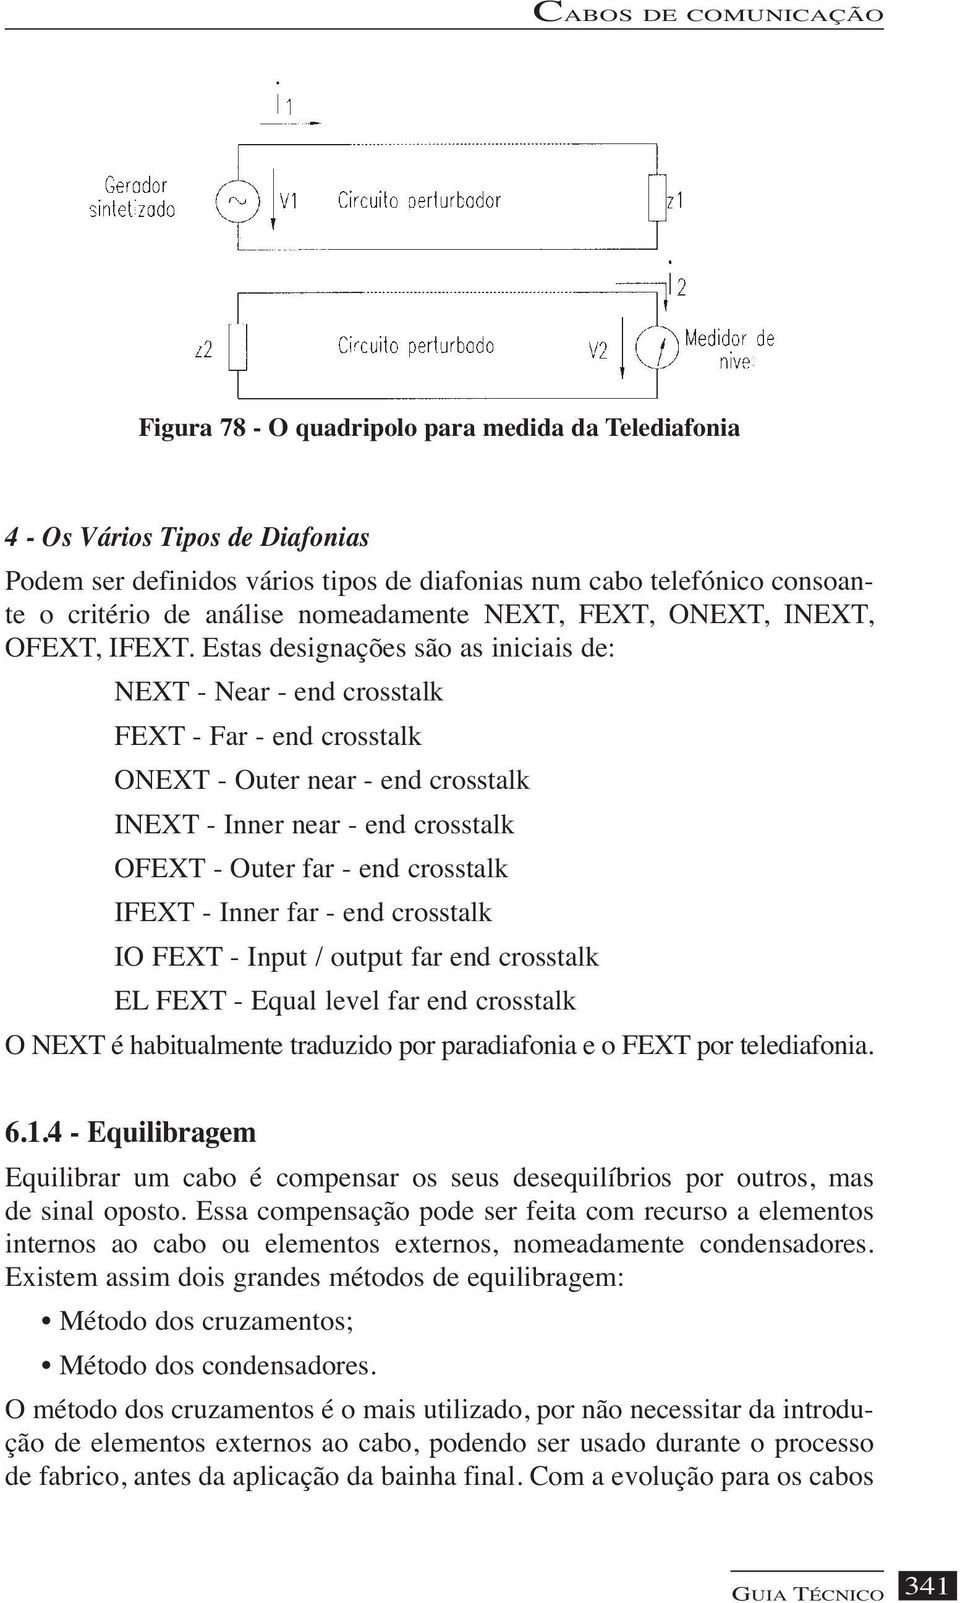 Estas designações são as iniciais de: NEXT - Near - end crosstalk FEXT - Far - end crosstalk ONEXT - Outer near - end crosstalk INEXT - Inner near - end crosstalk OFEXT - Outer far - end crosstalk